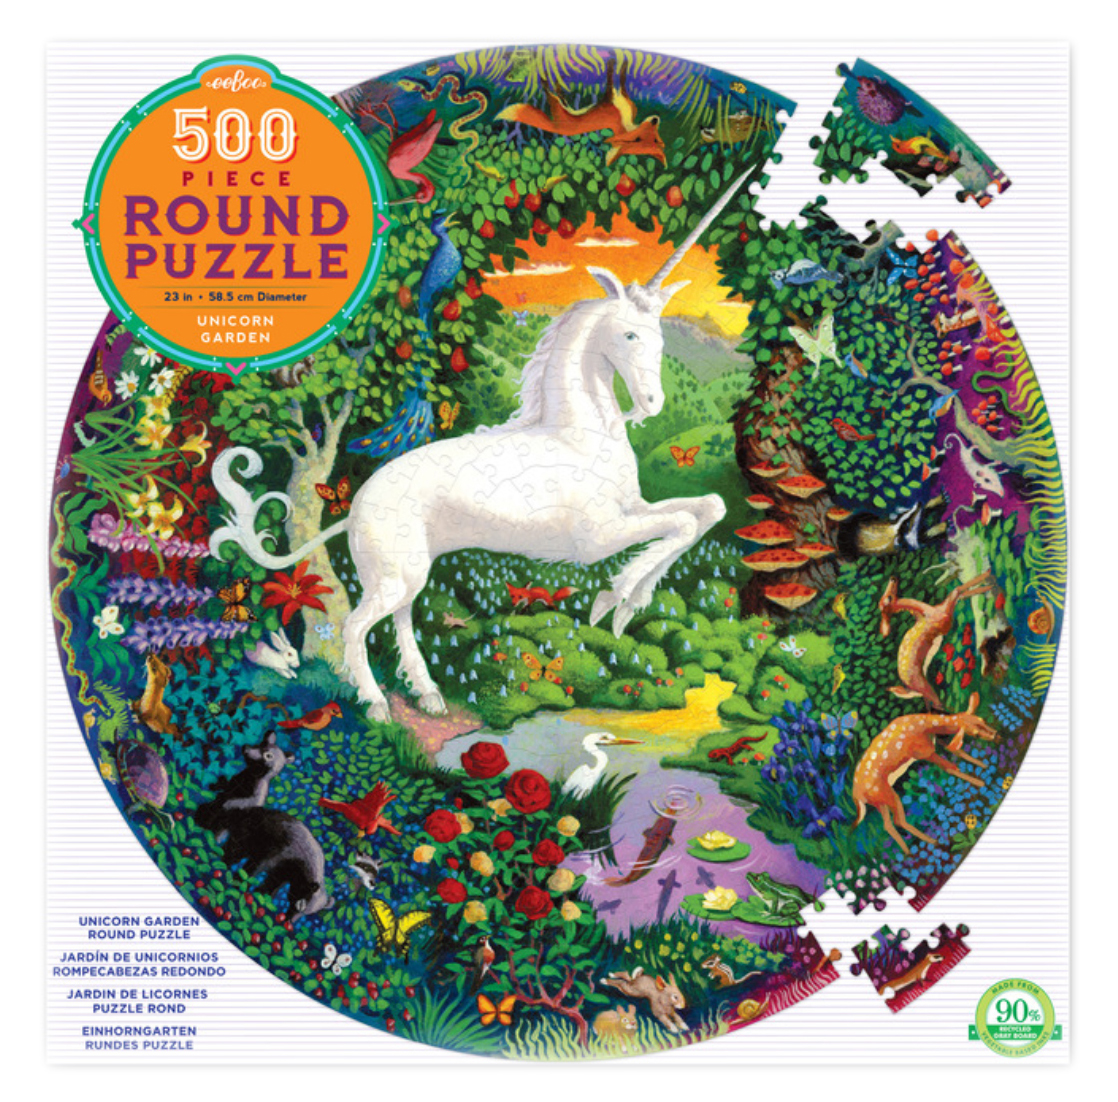 Unicorn Garden 500 Piece Round Puzzle by eeboo